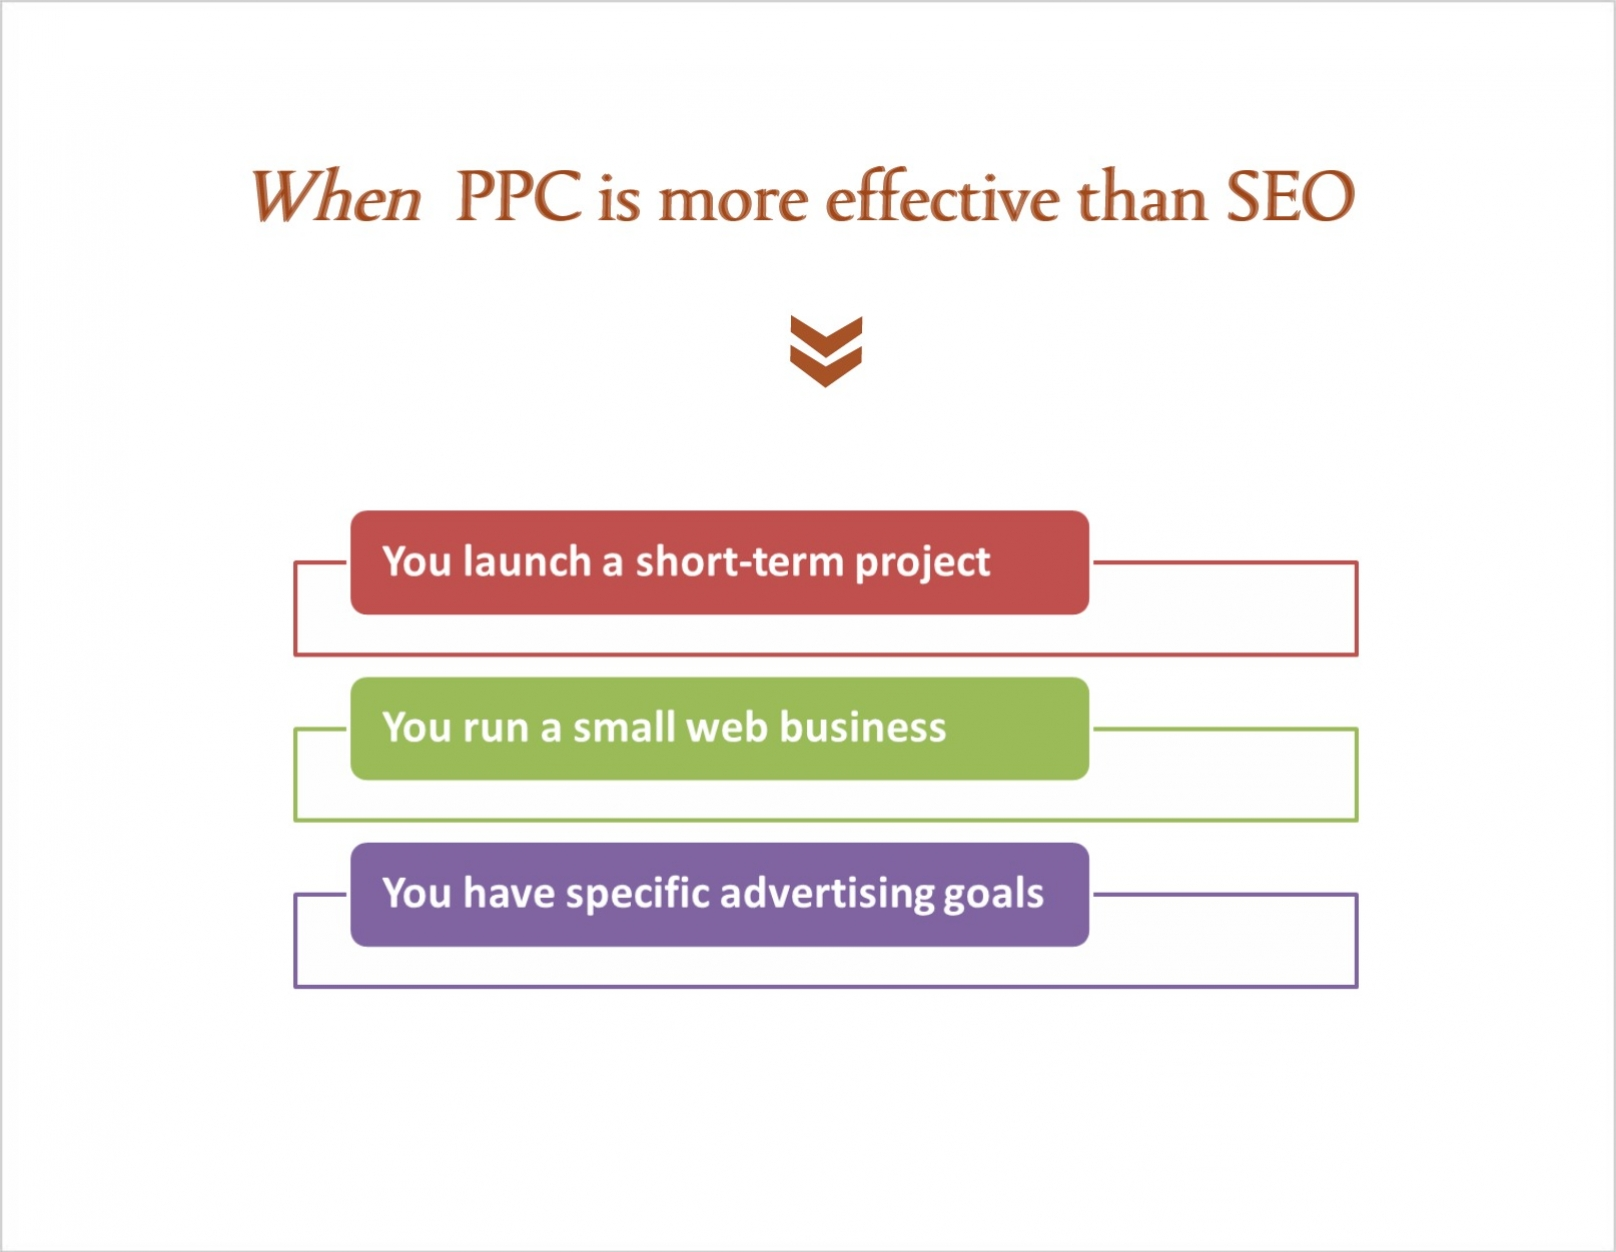 Situations when PPC advertising proves more effective than SEO